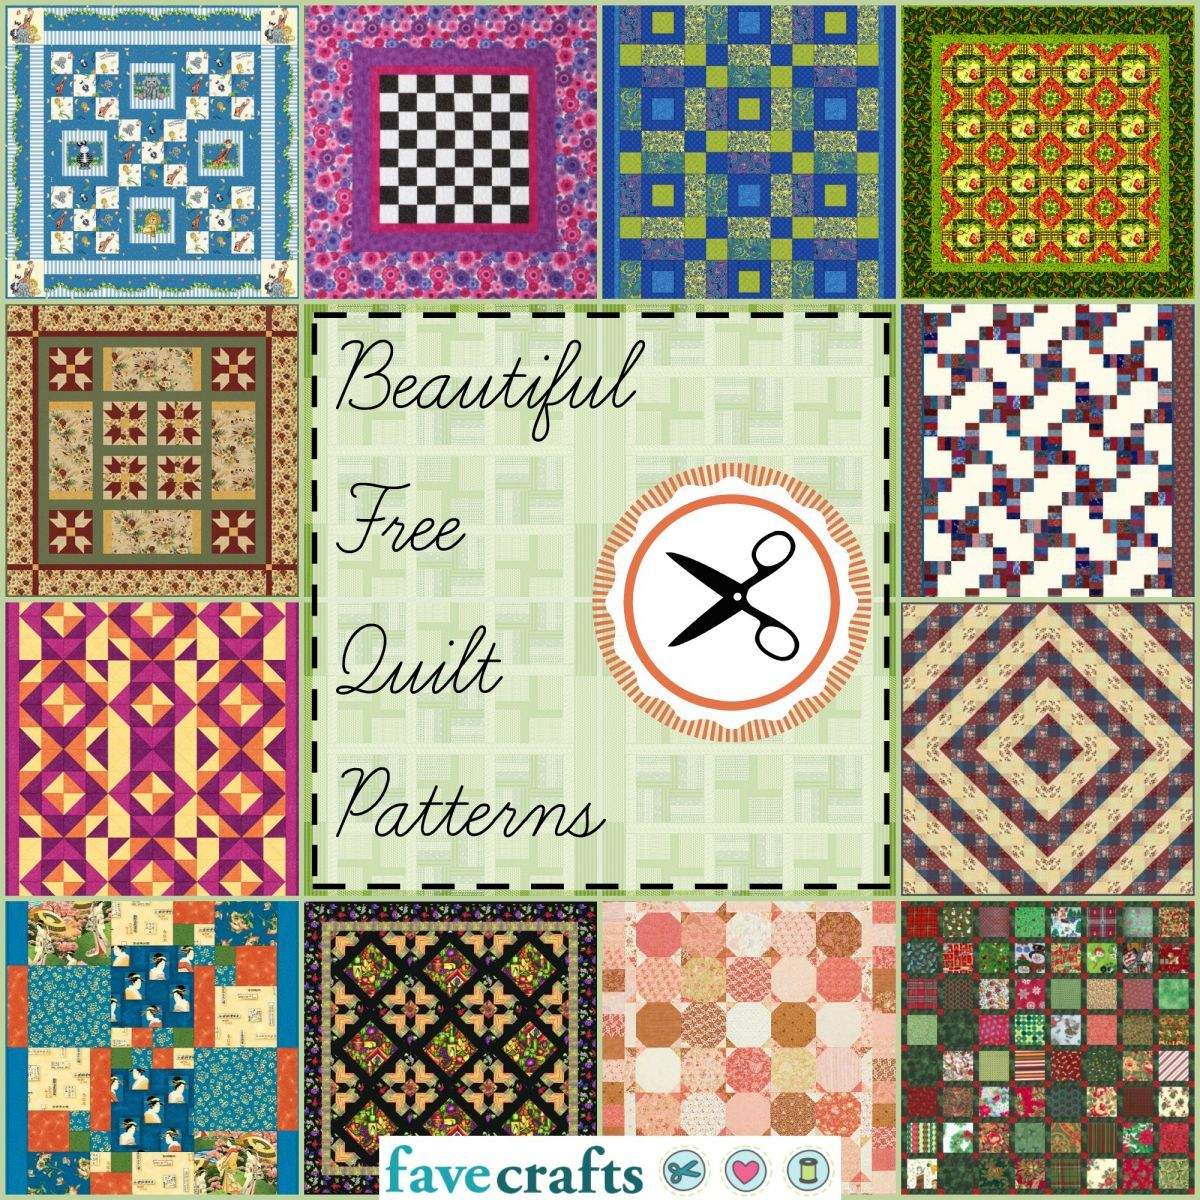 38 Free Quilt Patterns | Telas patchwork, Colchas y Edredones